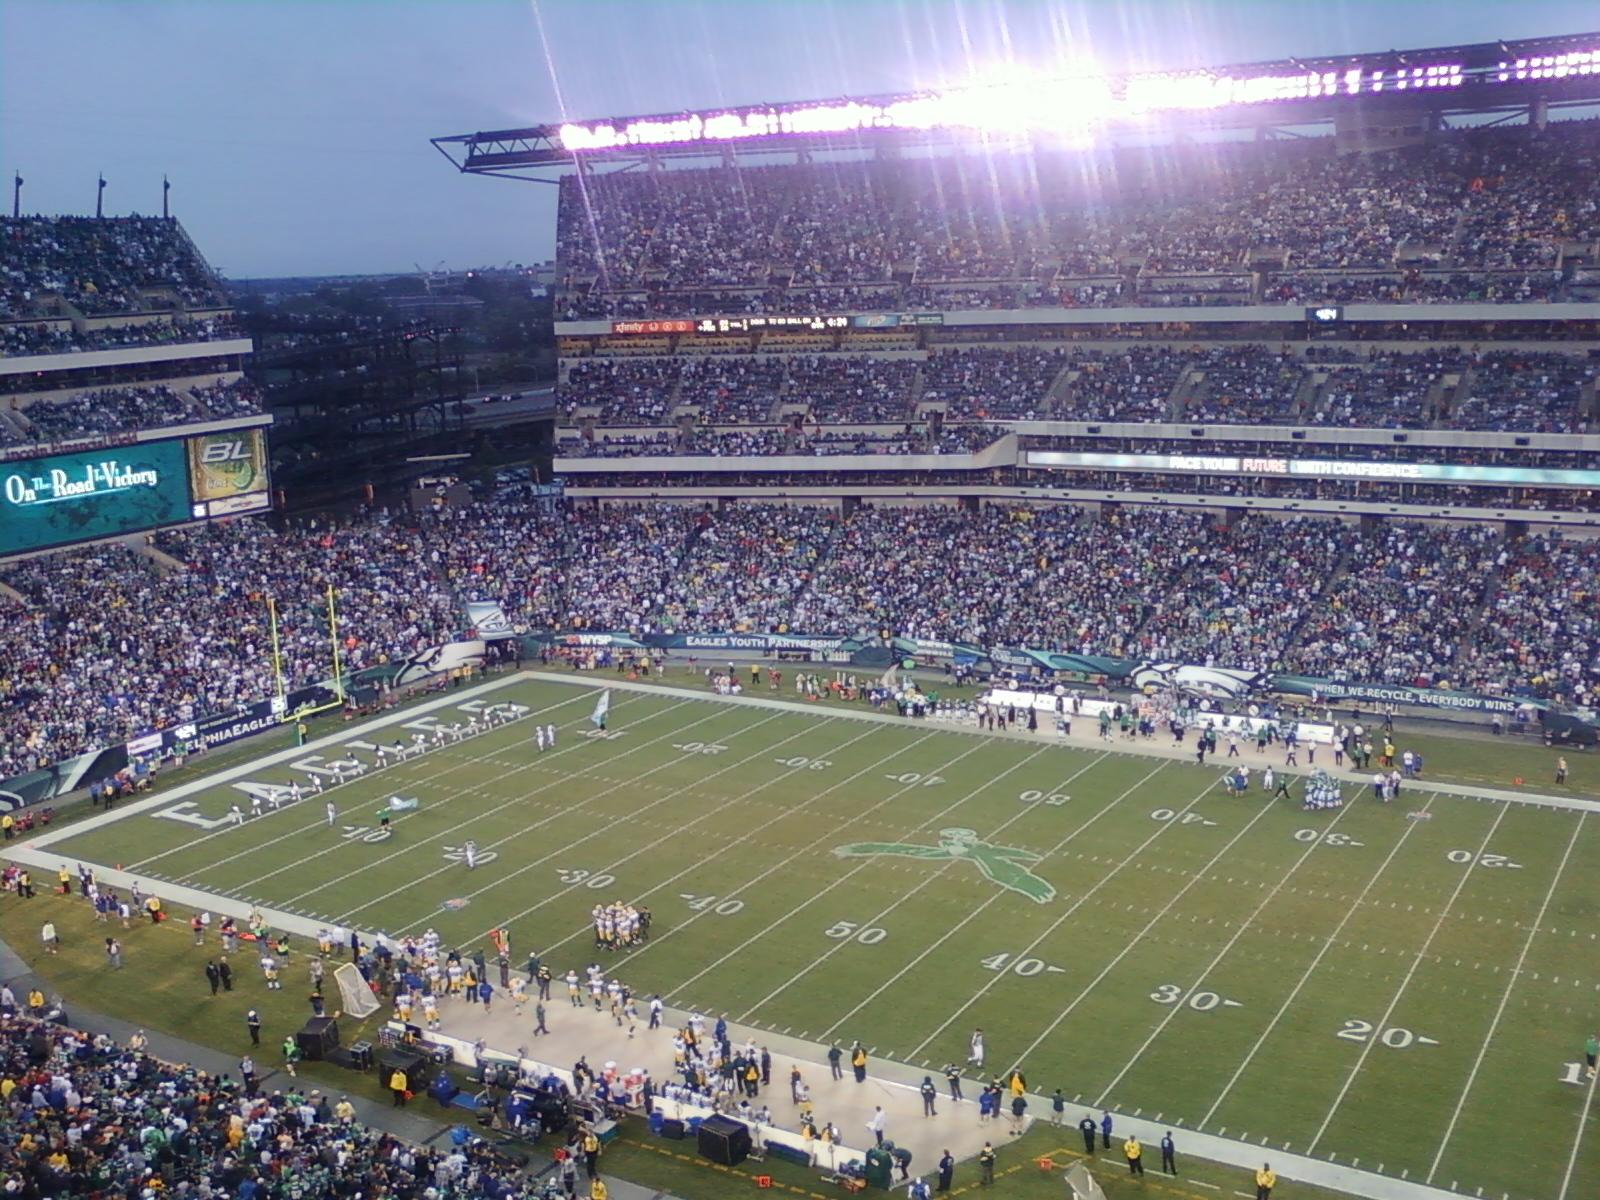 Lincoln Financial Field Section 228 Row 9 Seat 15